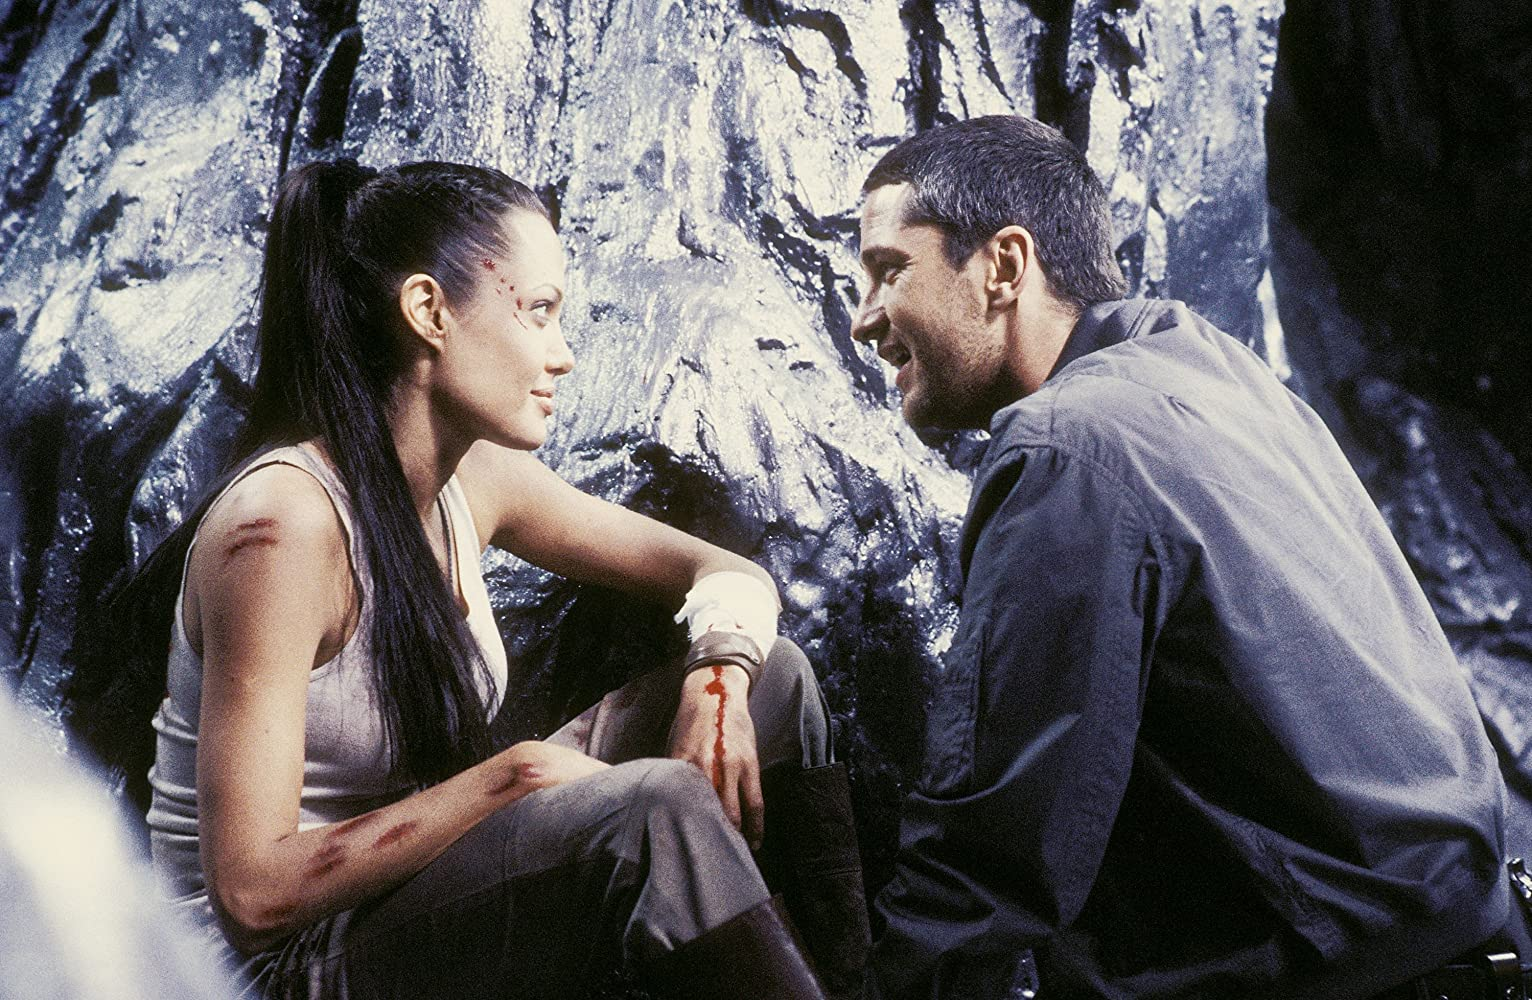 Angelina Jolie and Gerard Butler in Lara Croft Tomb Raider: The Cradle of Life (2003)